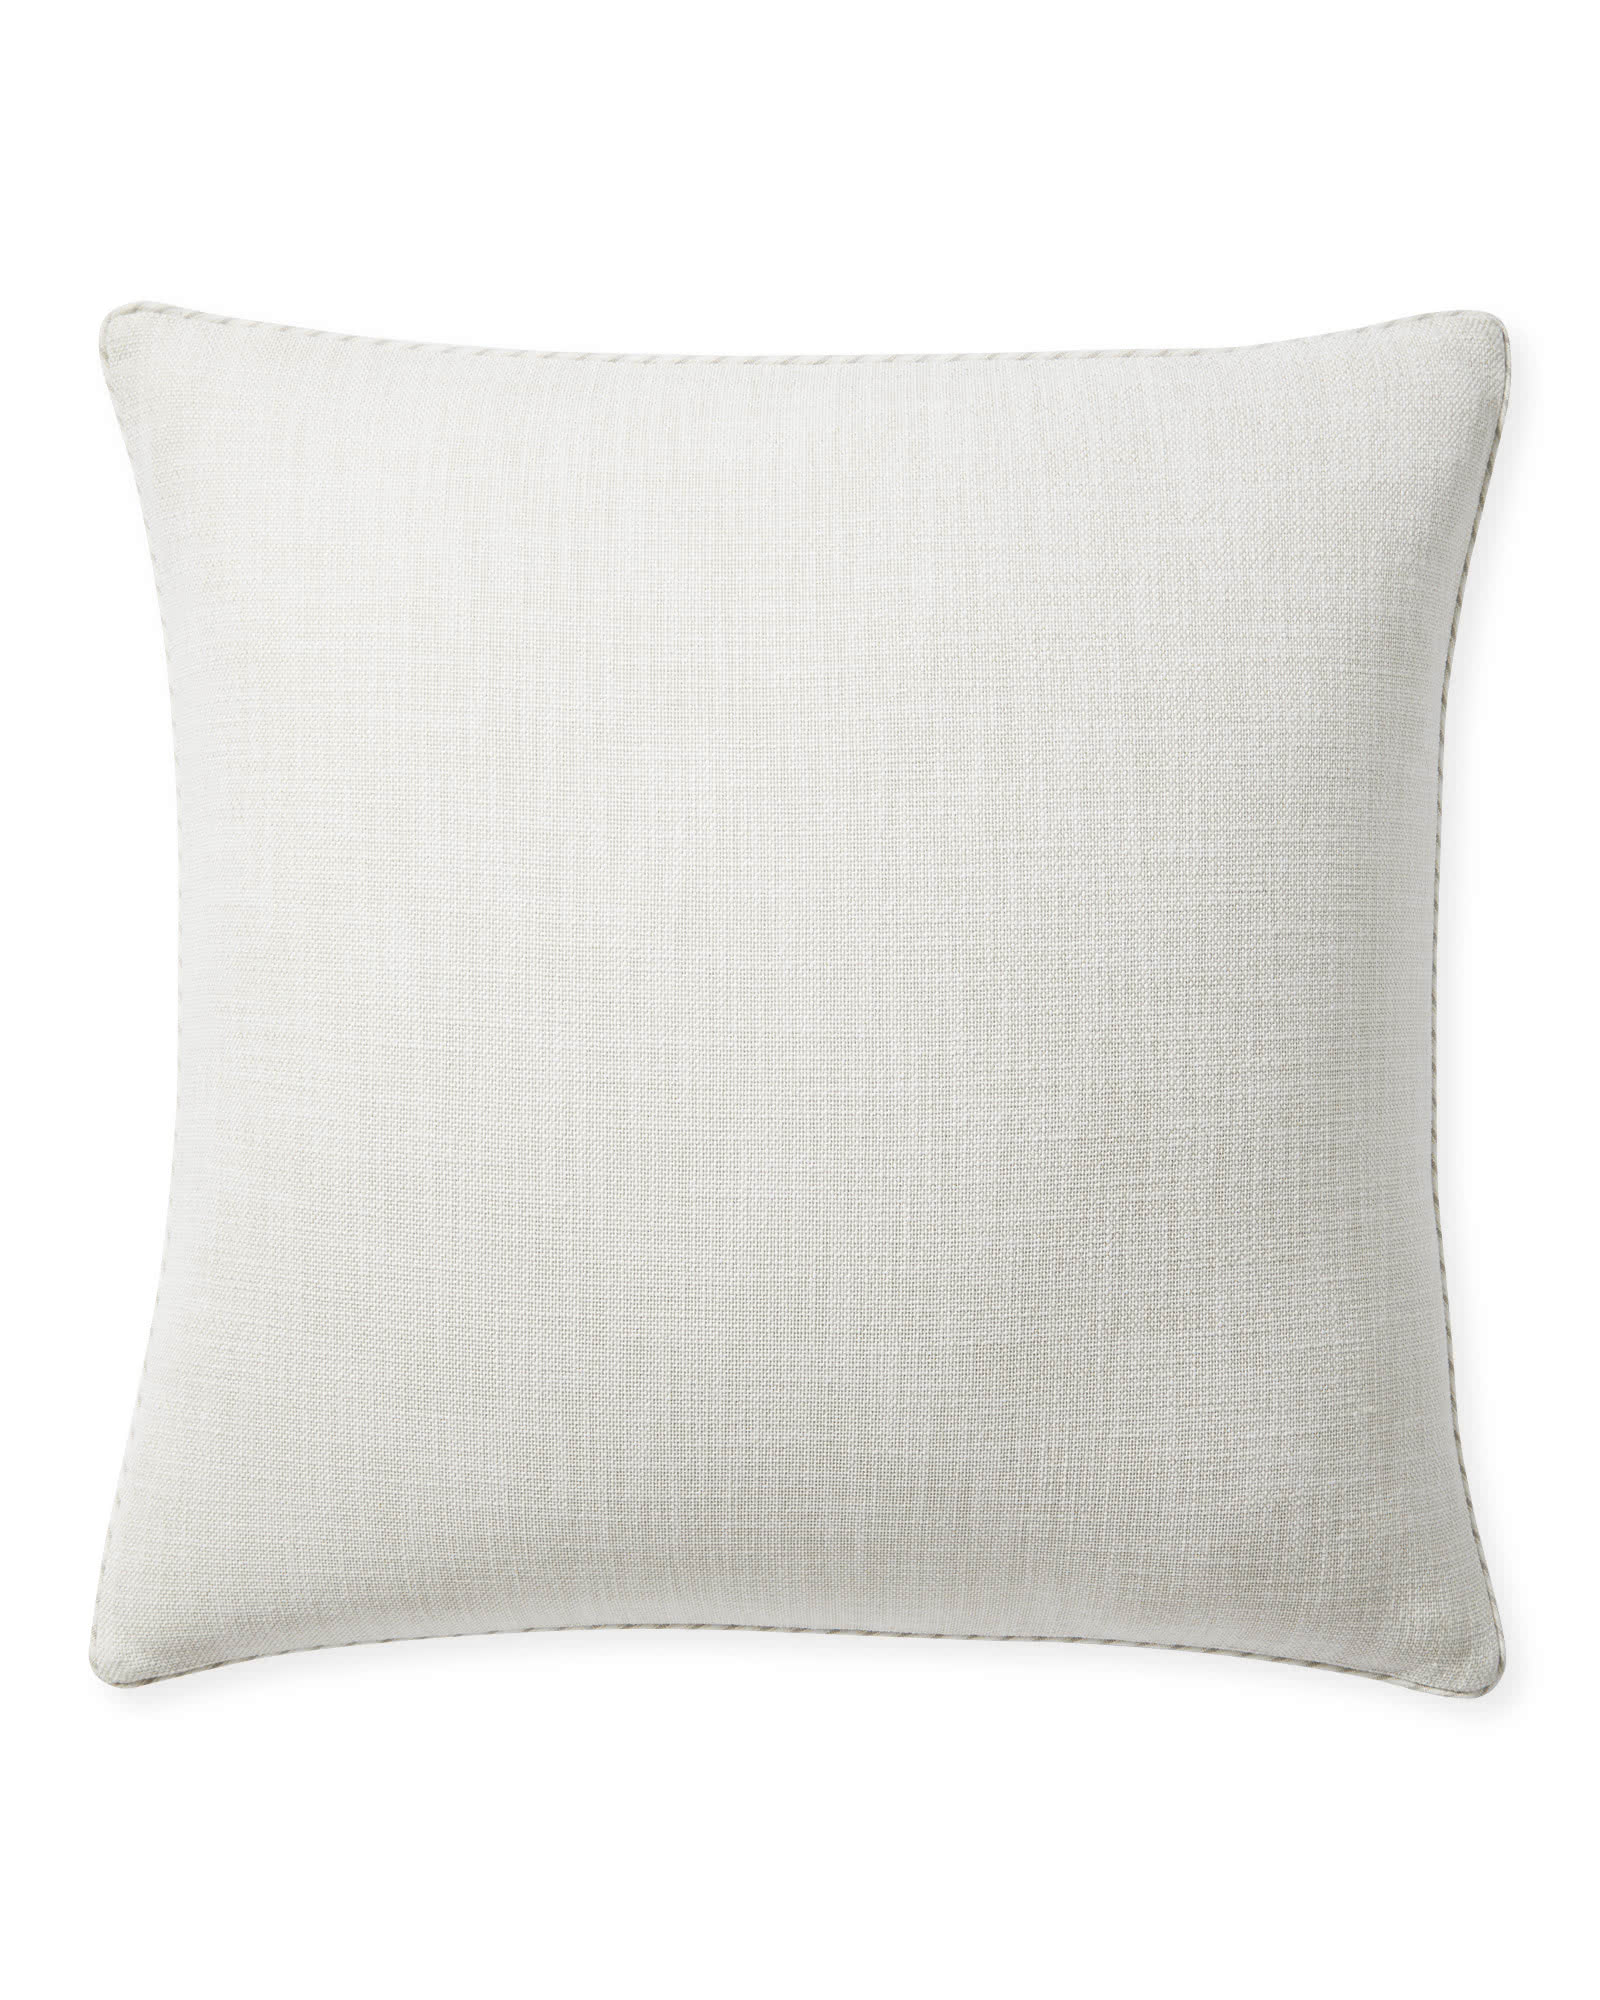 Perennials® Basketweave Outdoor Pillow Cover, Sand